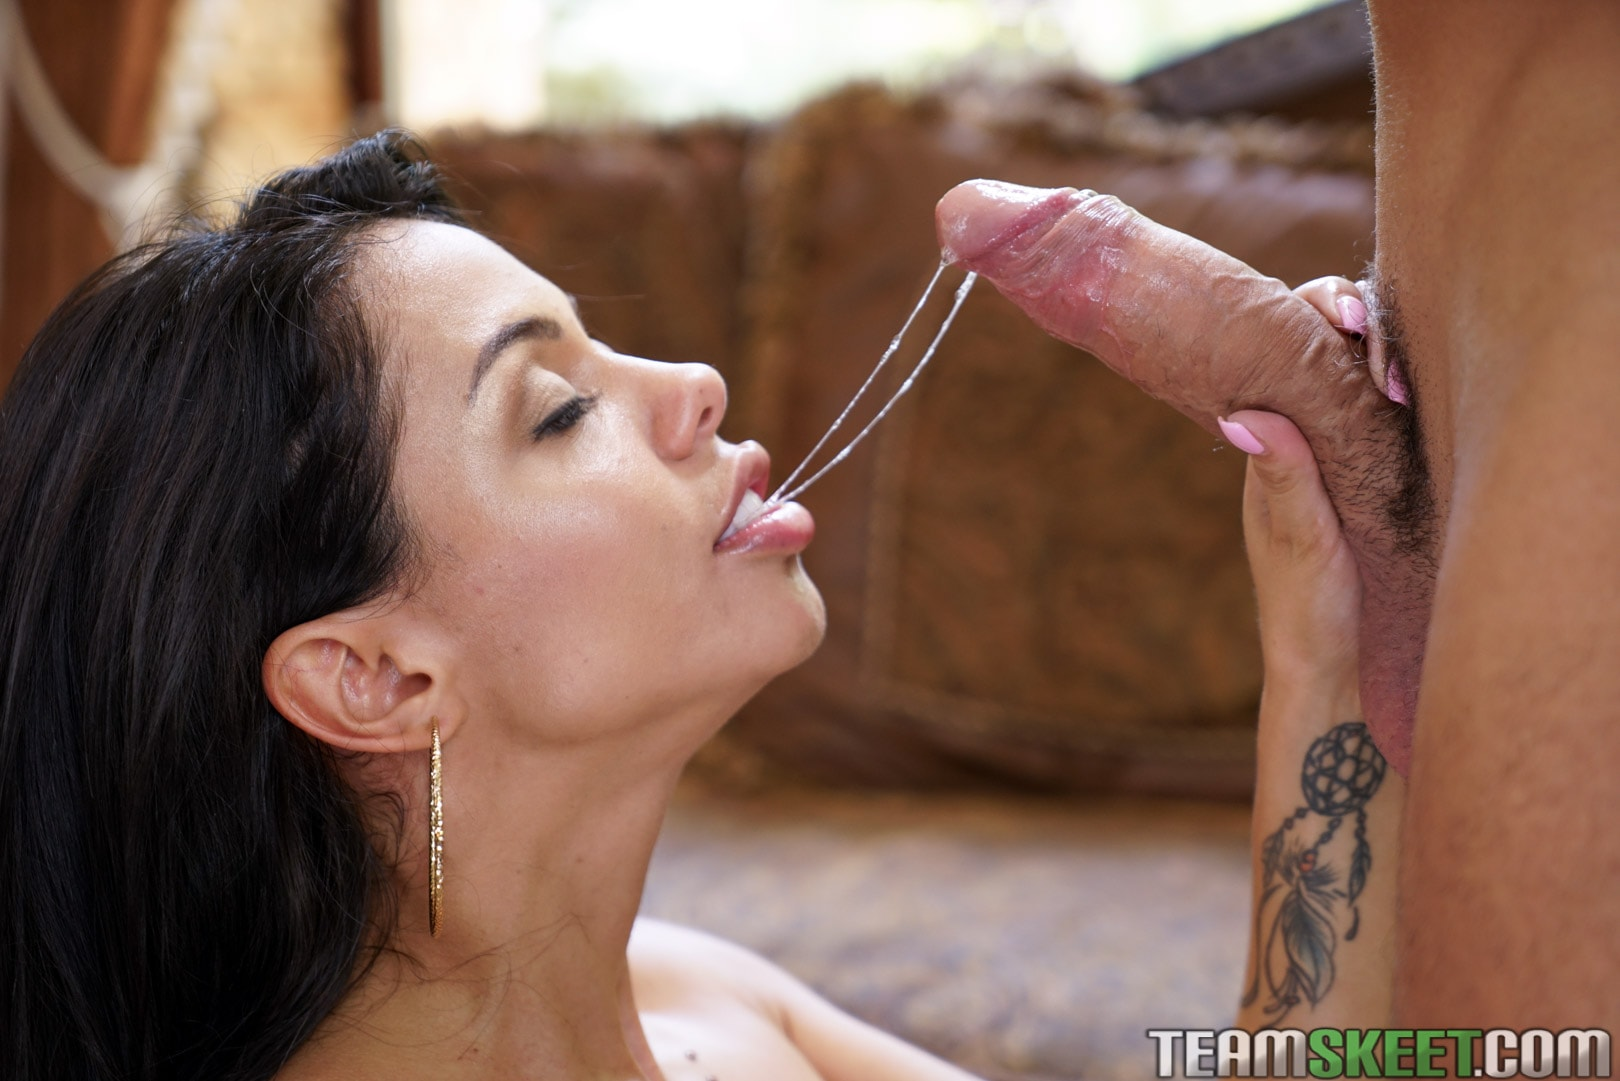 Team Skeet 'Sexy Latina Shows Us Her Positions' starring Canela Skin (Photo 180)